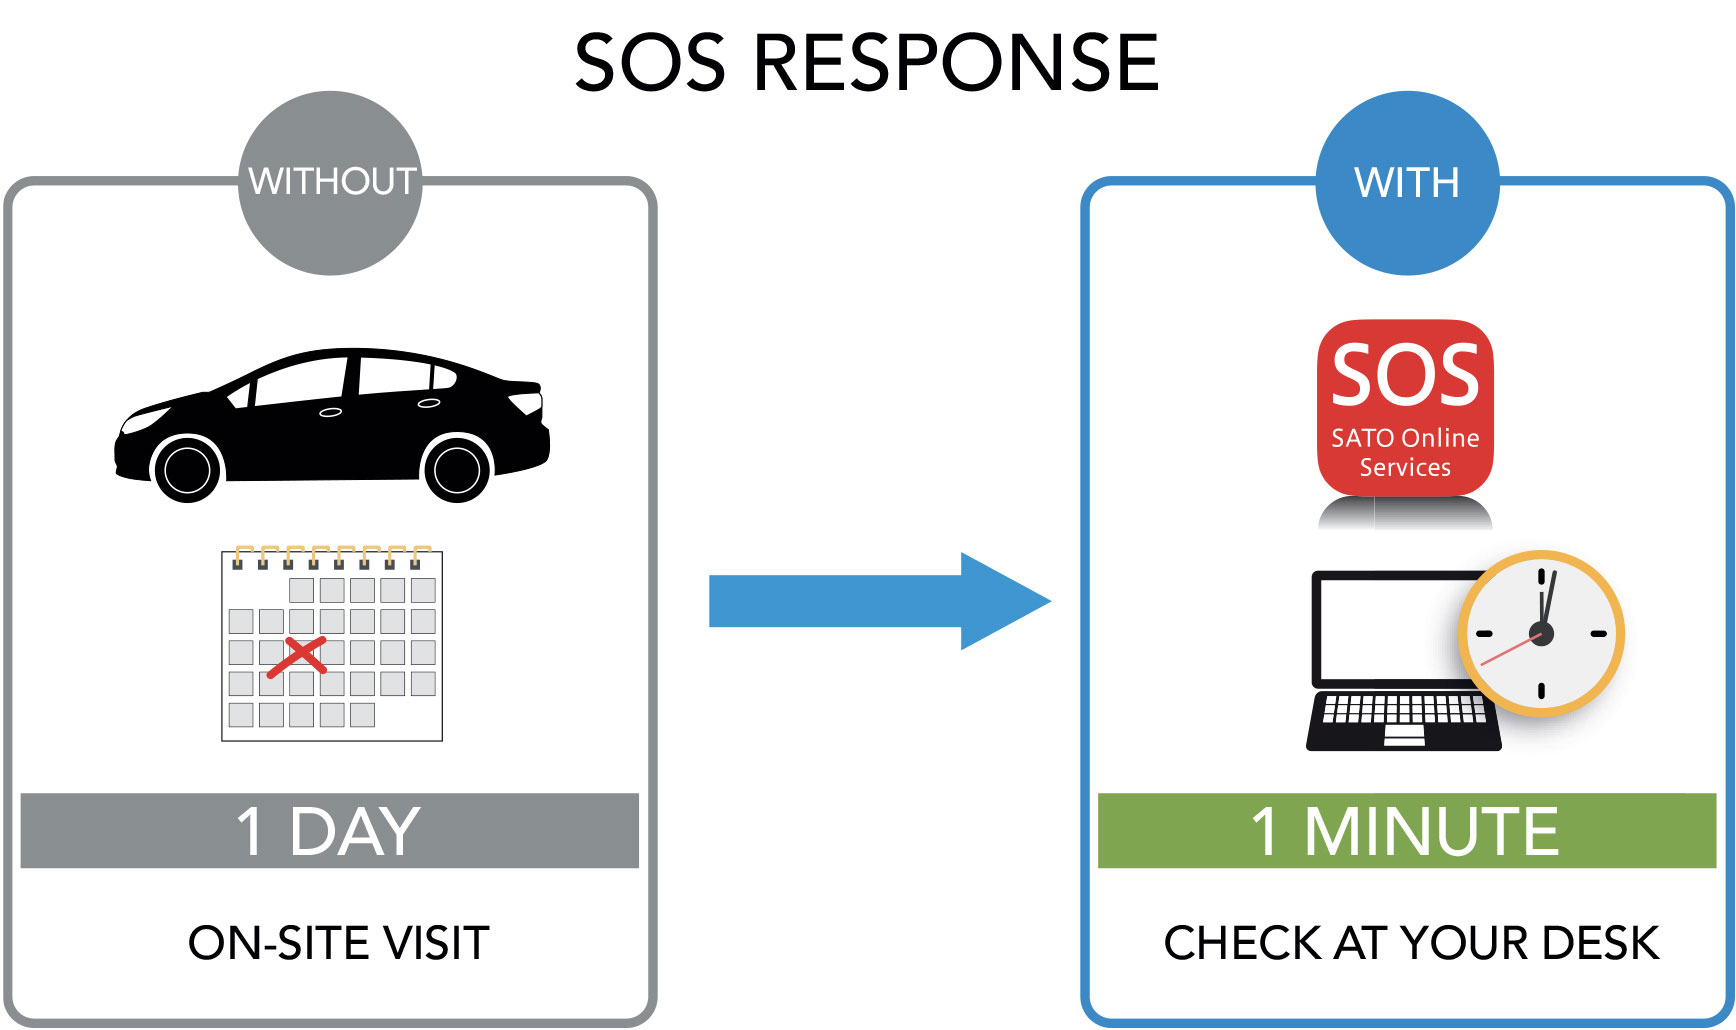 SOS Response illustration